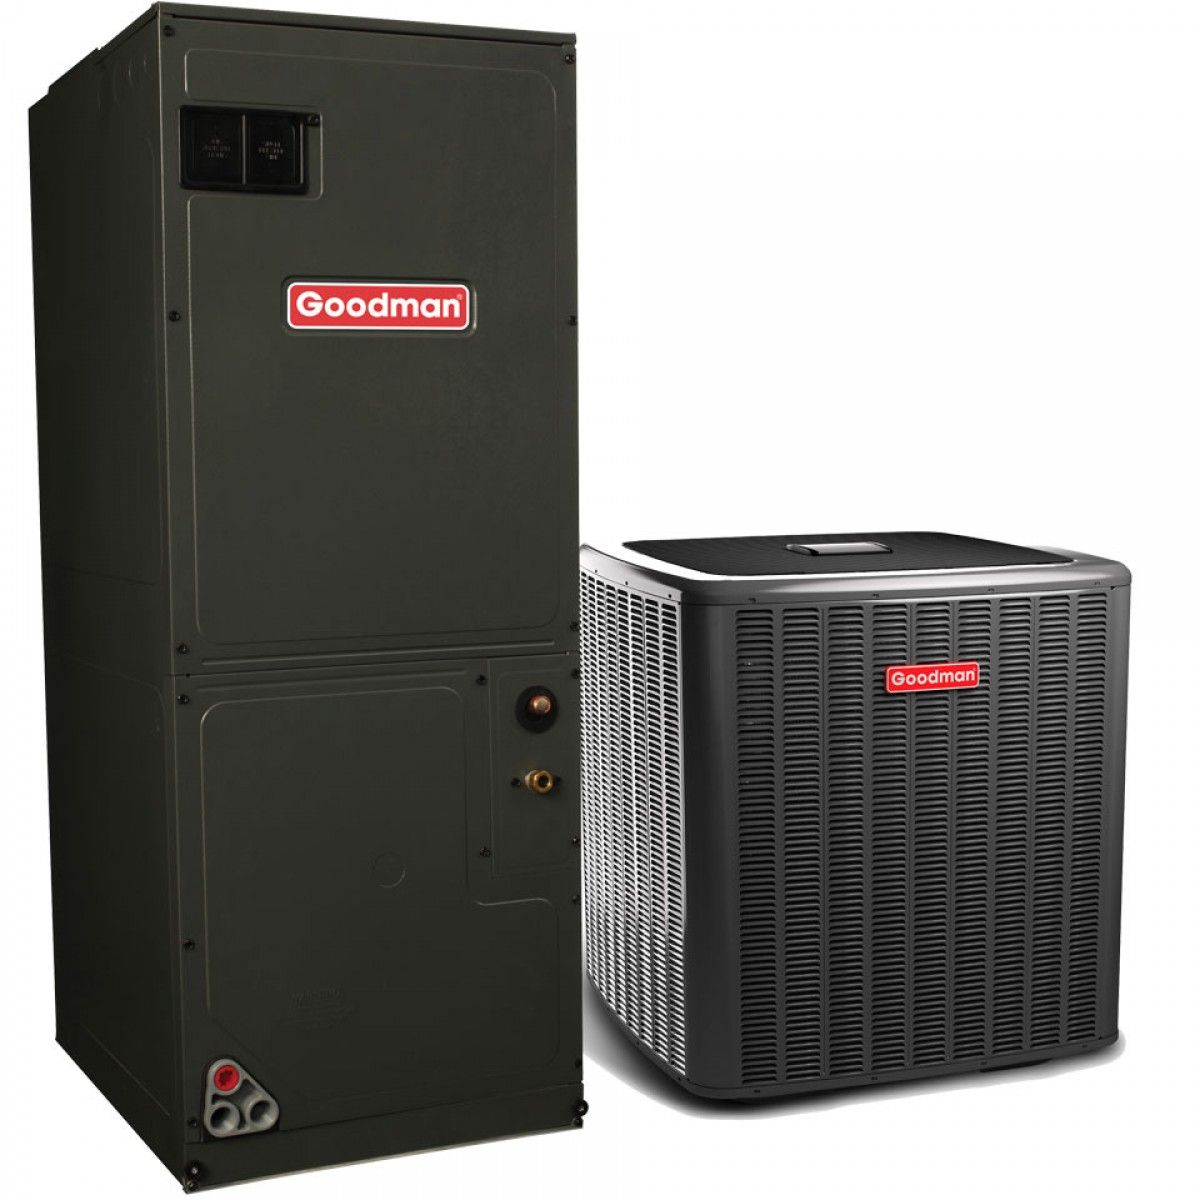 3 5 Ton Ac Unit >> Goodman 3.5 Ton 15 Seer Variable Speed Air Conditioning System Cooling Only